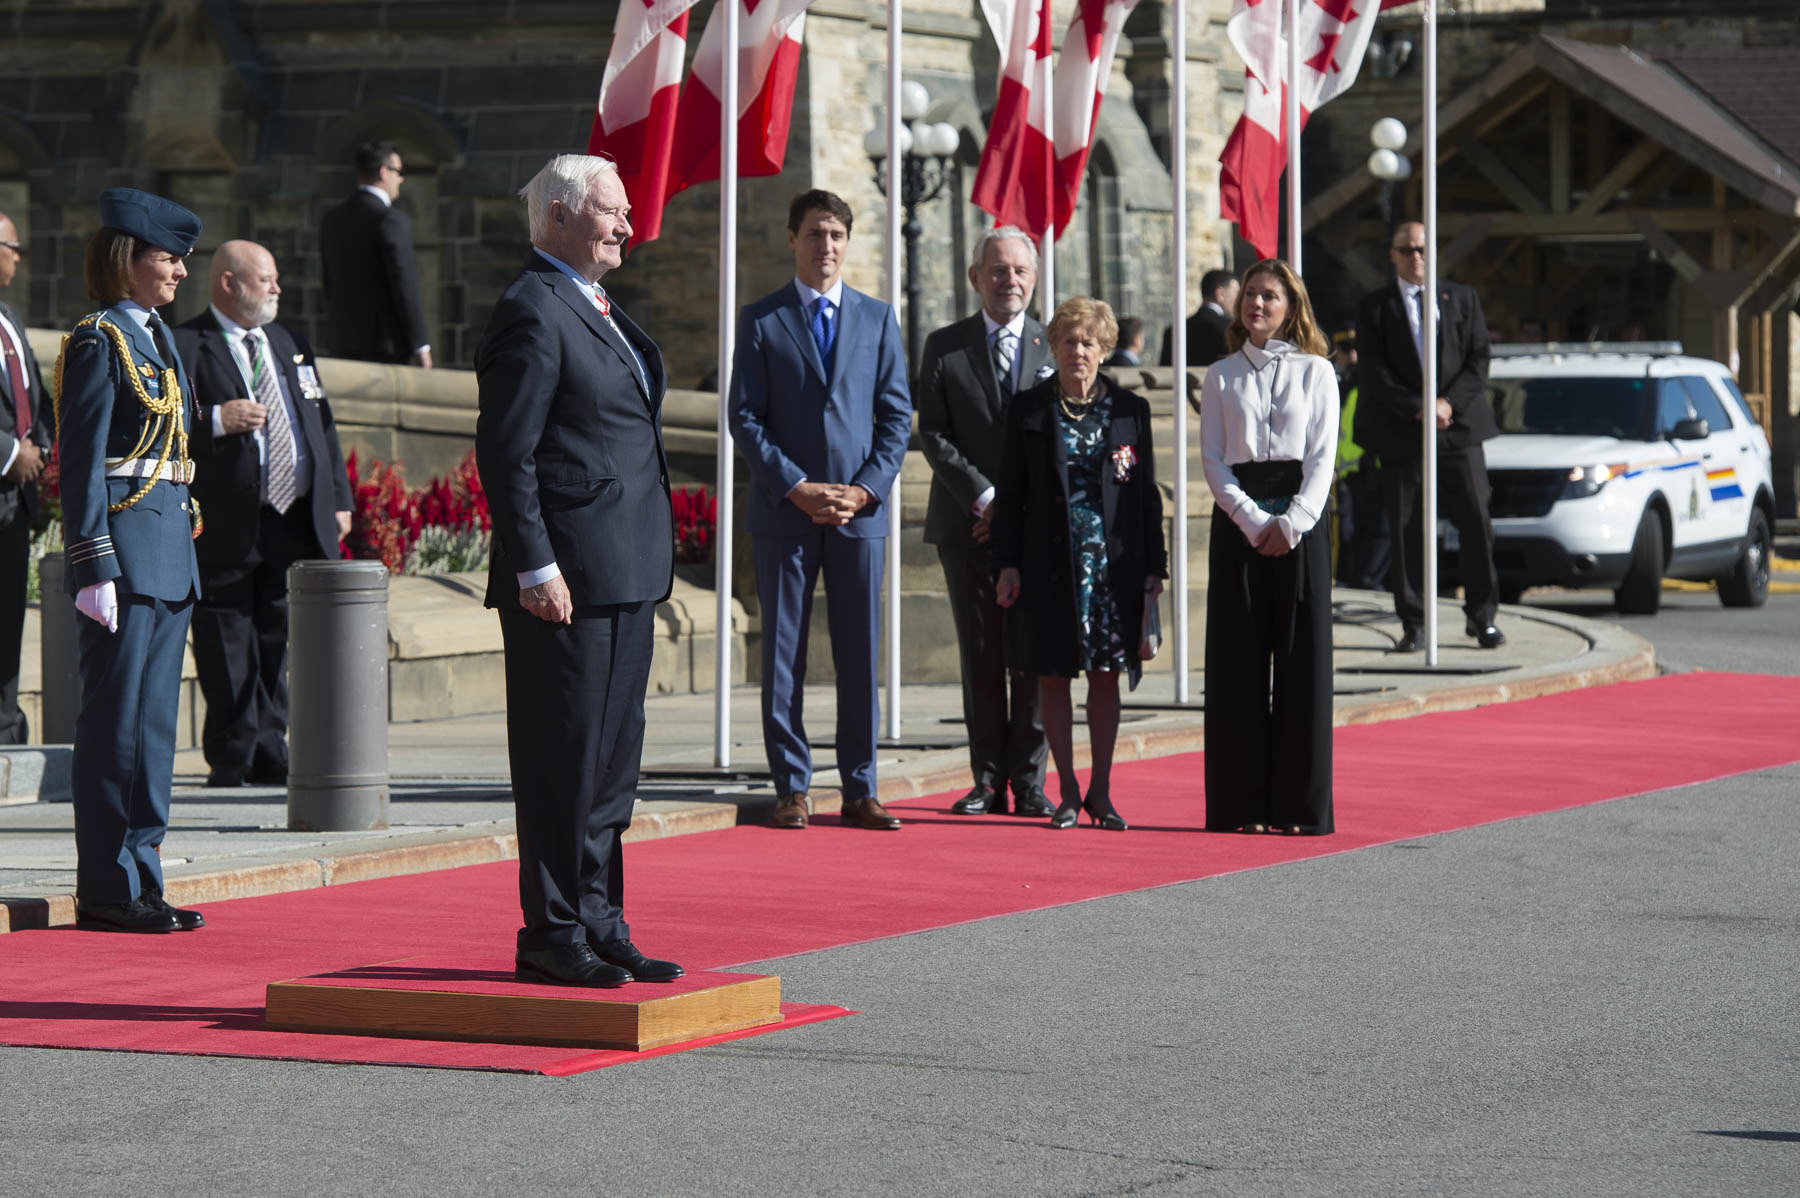 Upon his arrival at Parliament Hill, His Excellency the Right Honourable David Johnston, 28th Governor General of Canada, received a Royal Salute from the Canadian Armed Forces guard of honour.